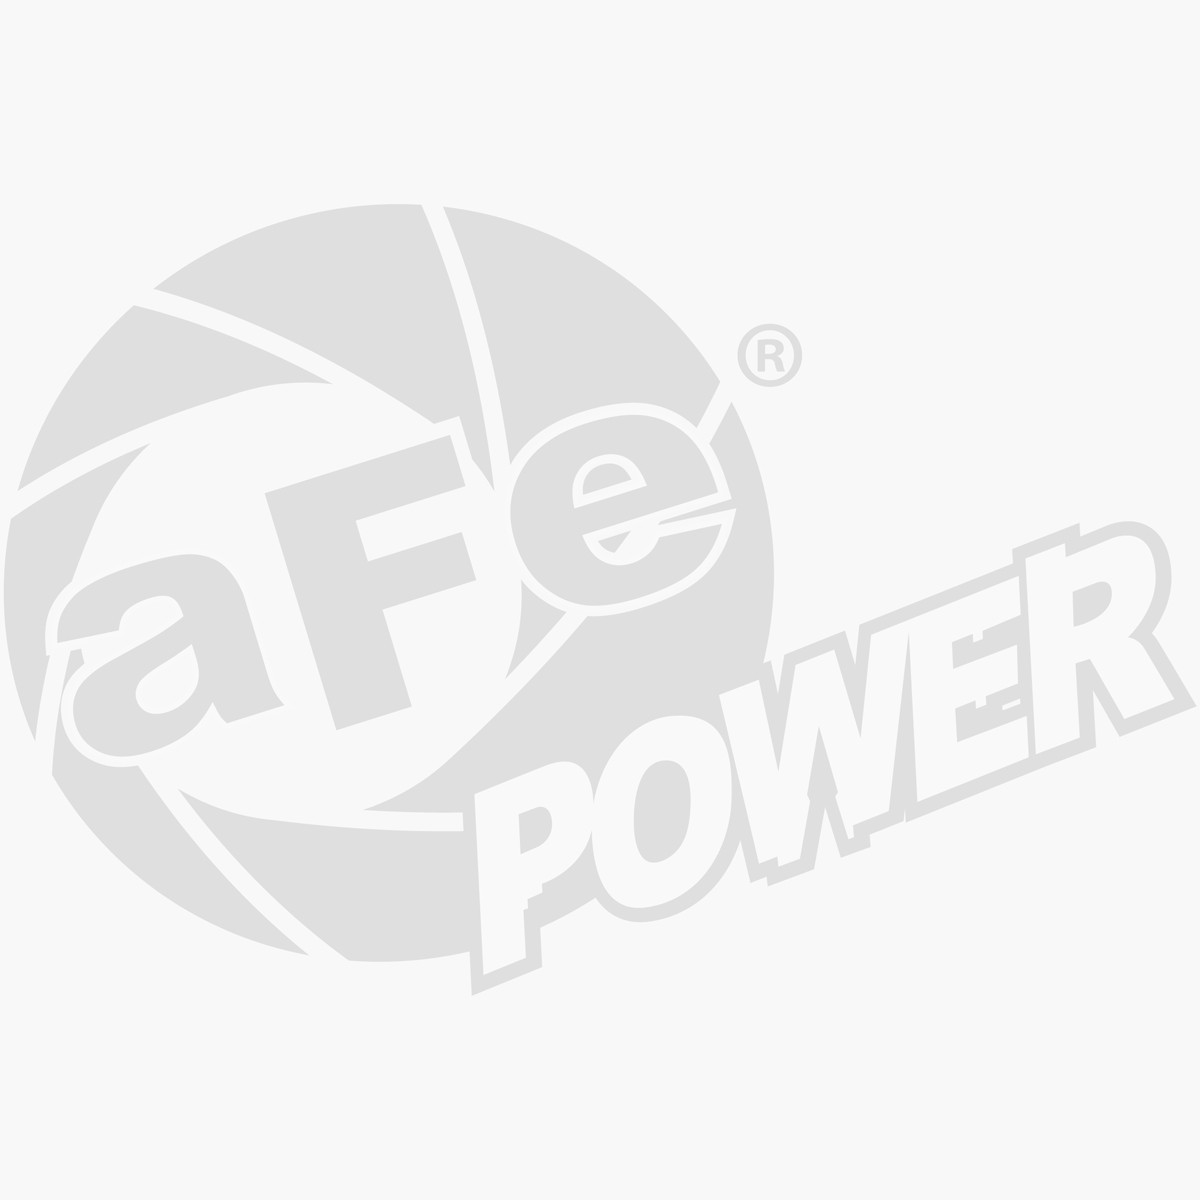 aFe POWER 40-30239 Apparel; Shirt, Tee - Innovate or Die (3XL)